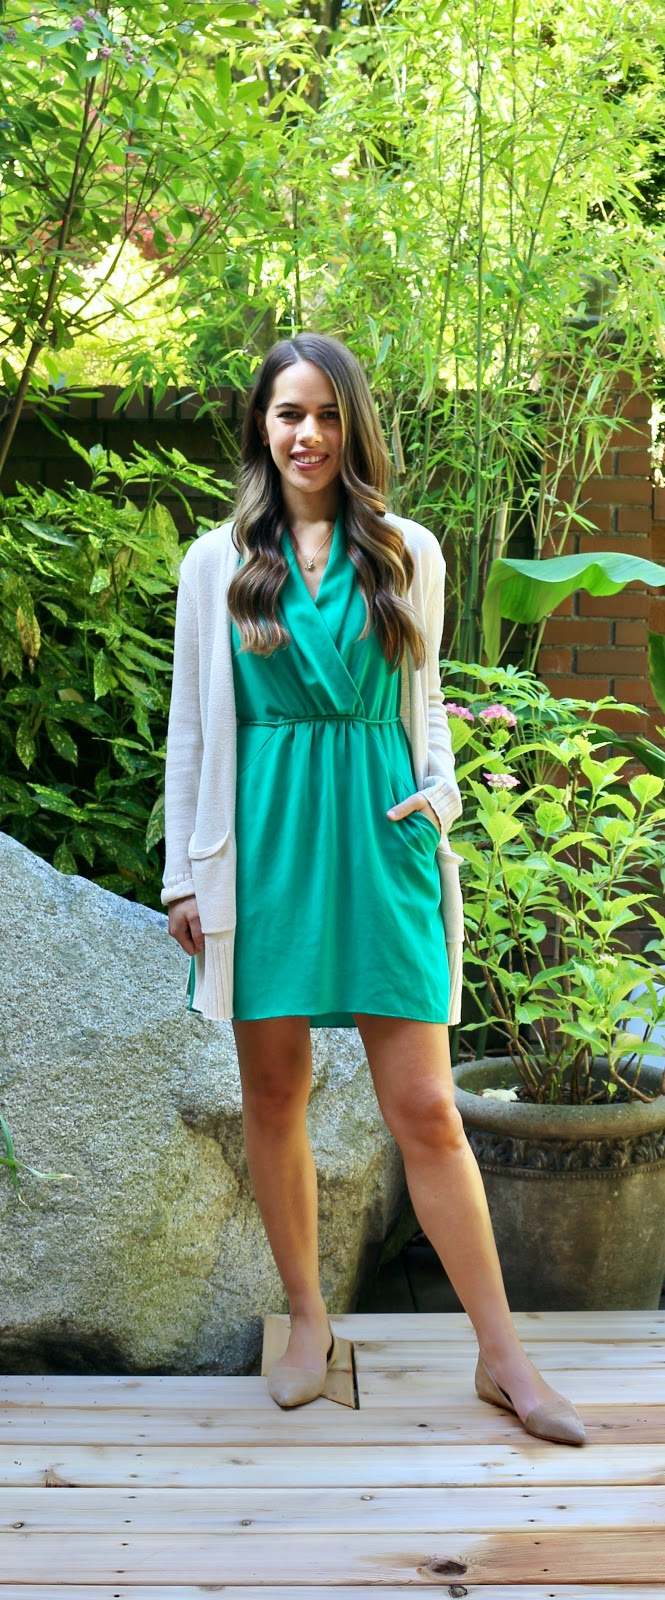 Jules in Flats - Aritzia Wilfred Sabine Dress in Kellly Green (Business Casual Workwear on a Budget)